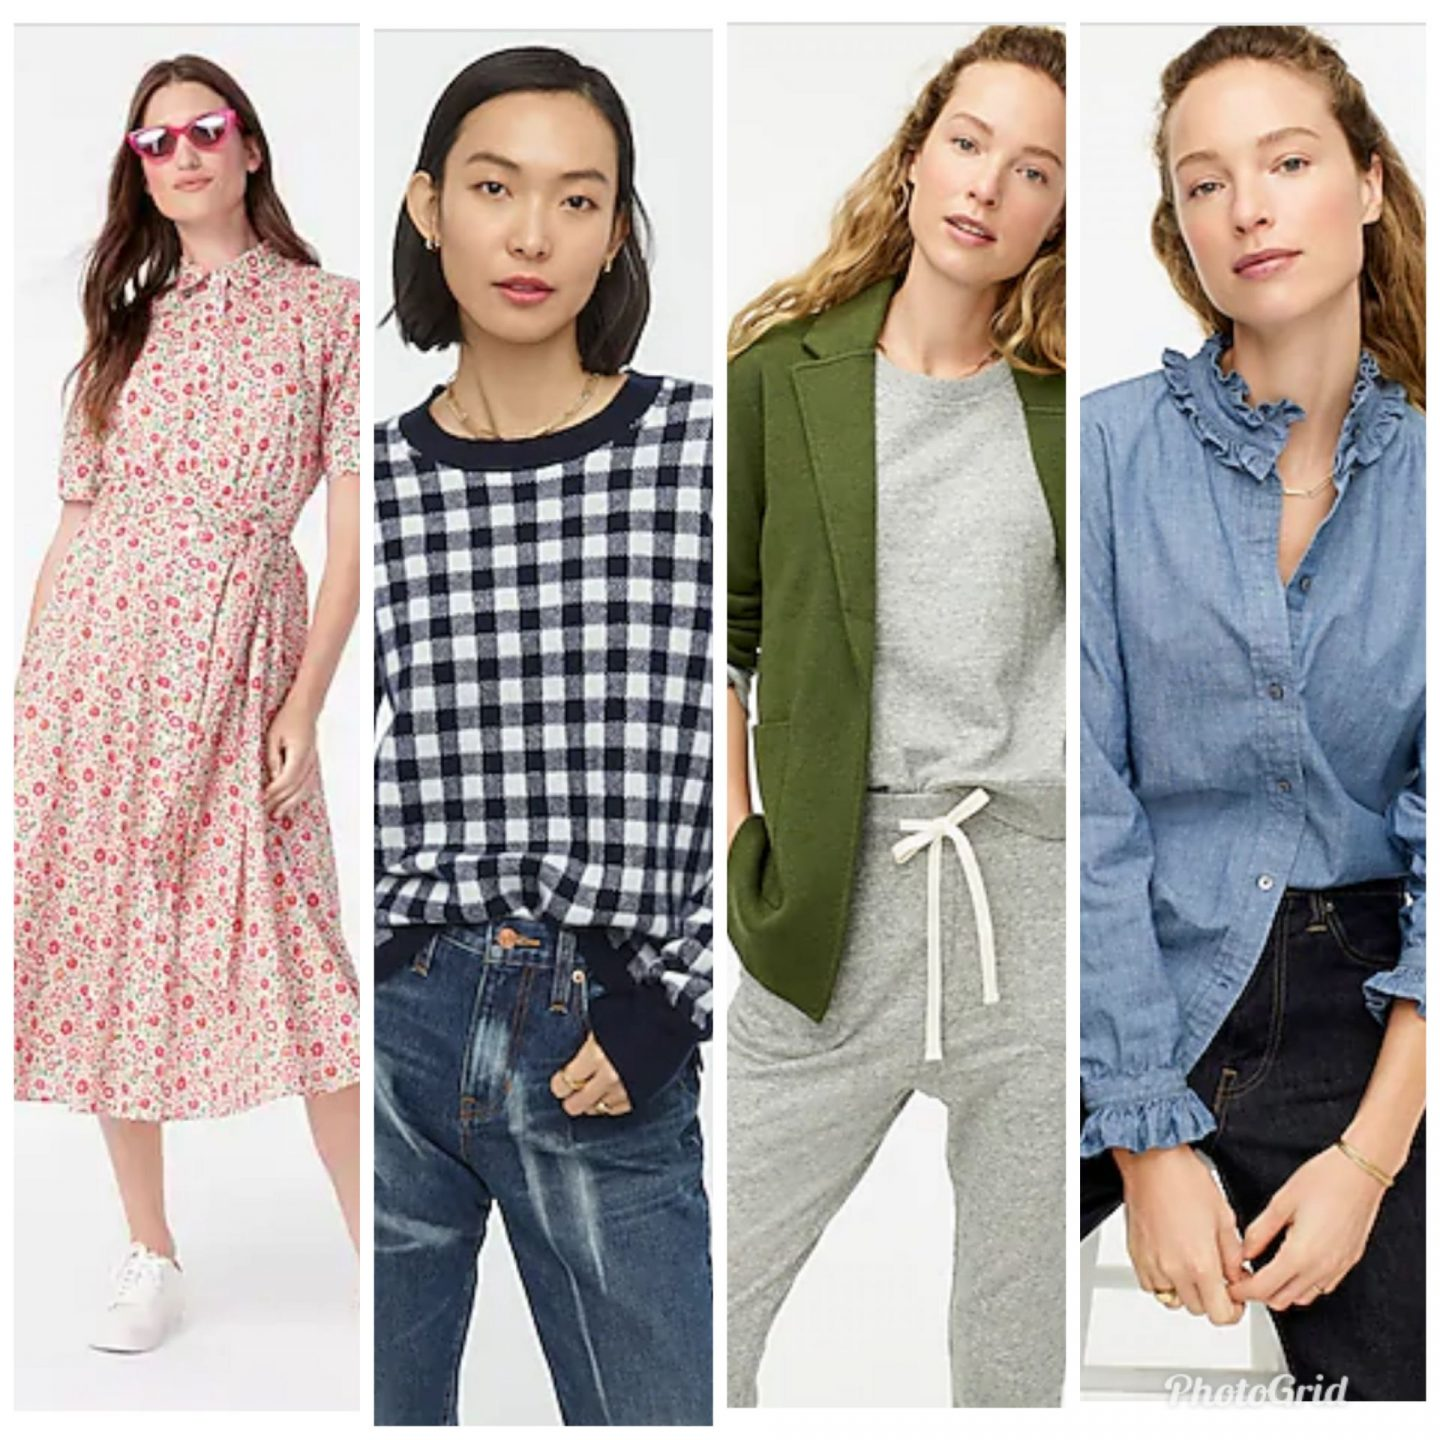 J. Crew New Arrivals by popular Kentucky fashion blog, Really Rynetta: collage image of a J.Crew floral print dress, long sleeve blue gingham top, green jacket, and ruffle neck denim top.